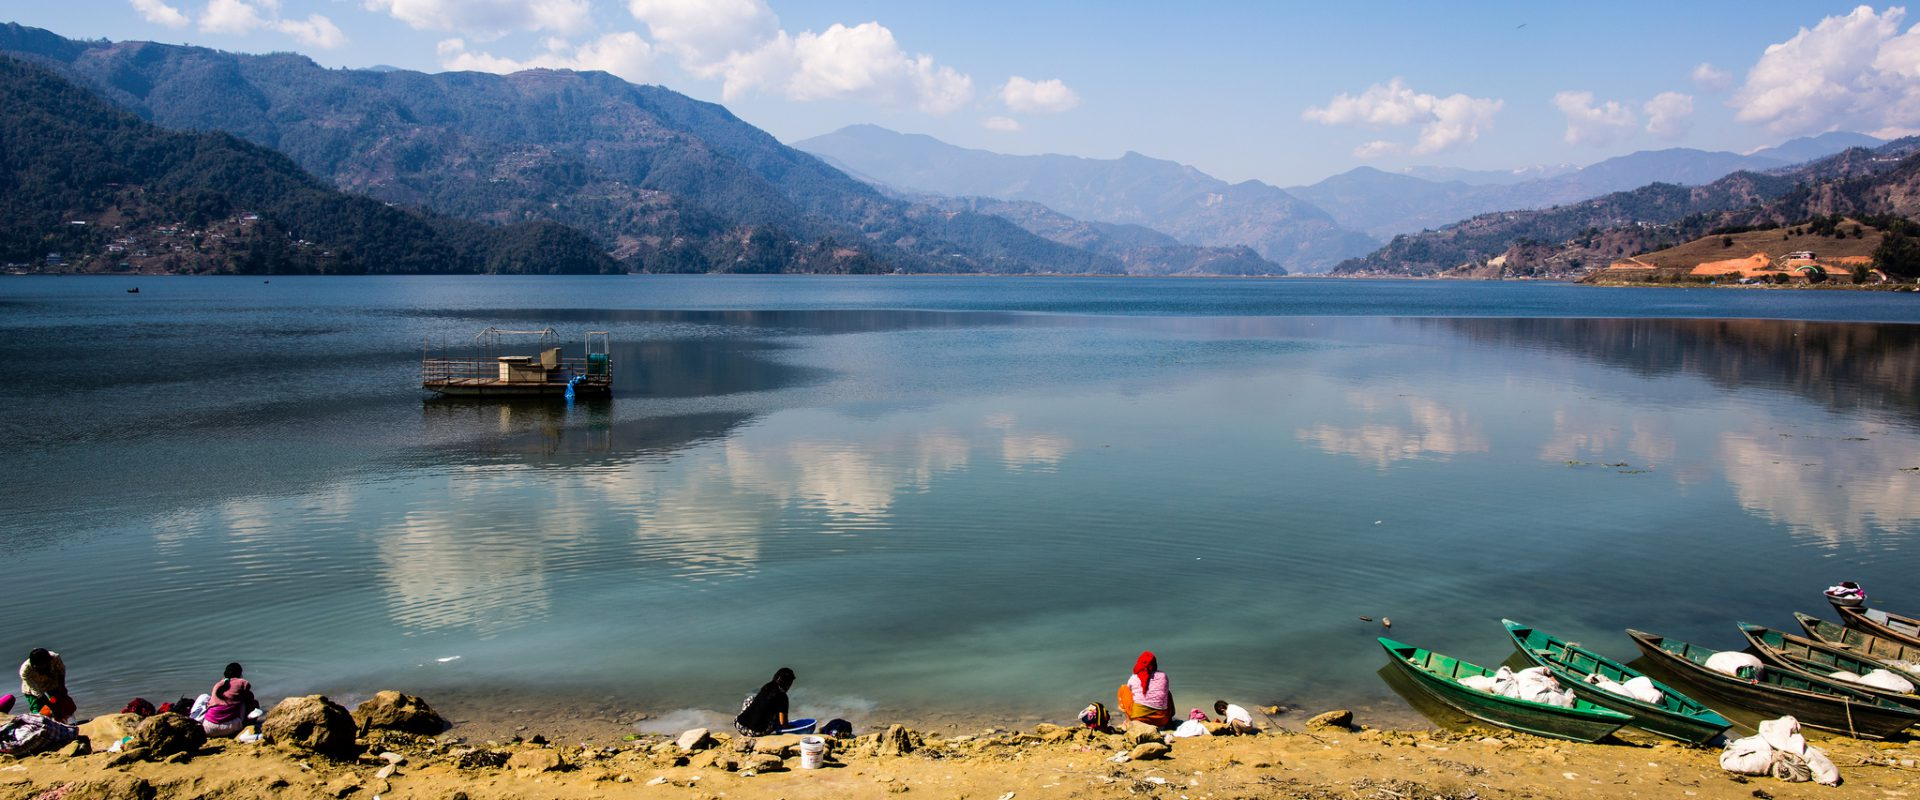 POKHARA - city of lake